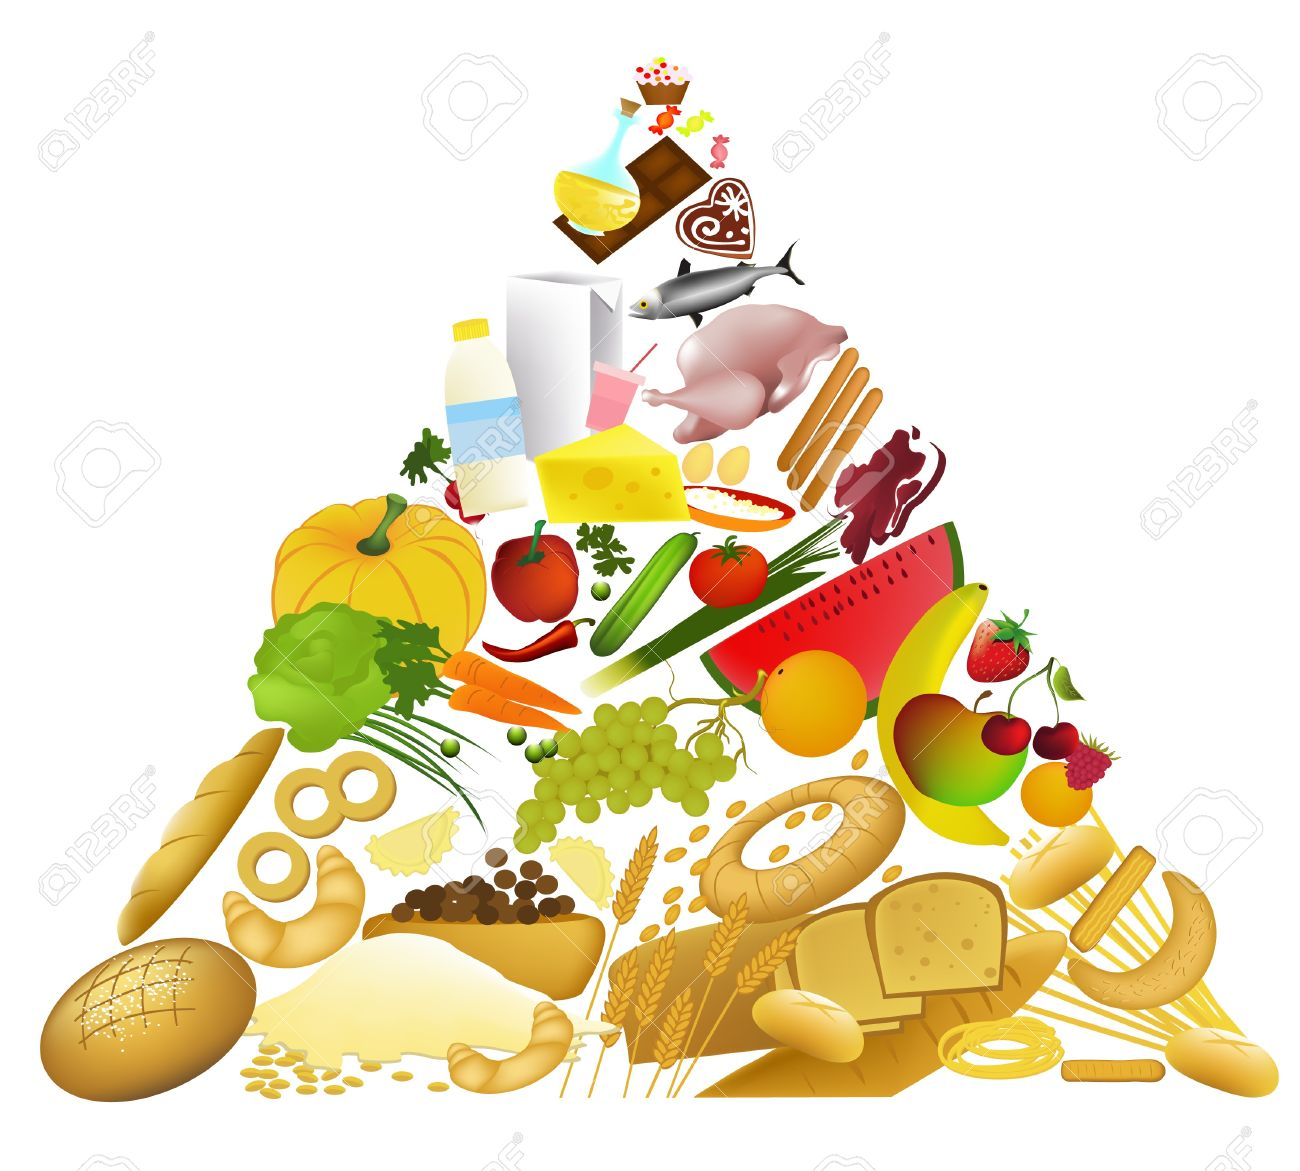 Food Pyramid Royalty Free Cliparts, Vectors, And Stock.